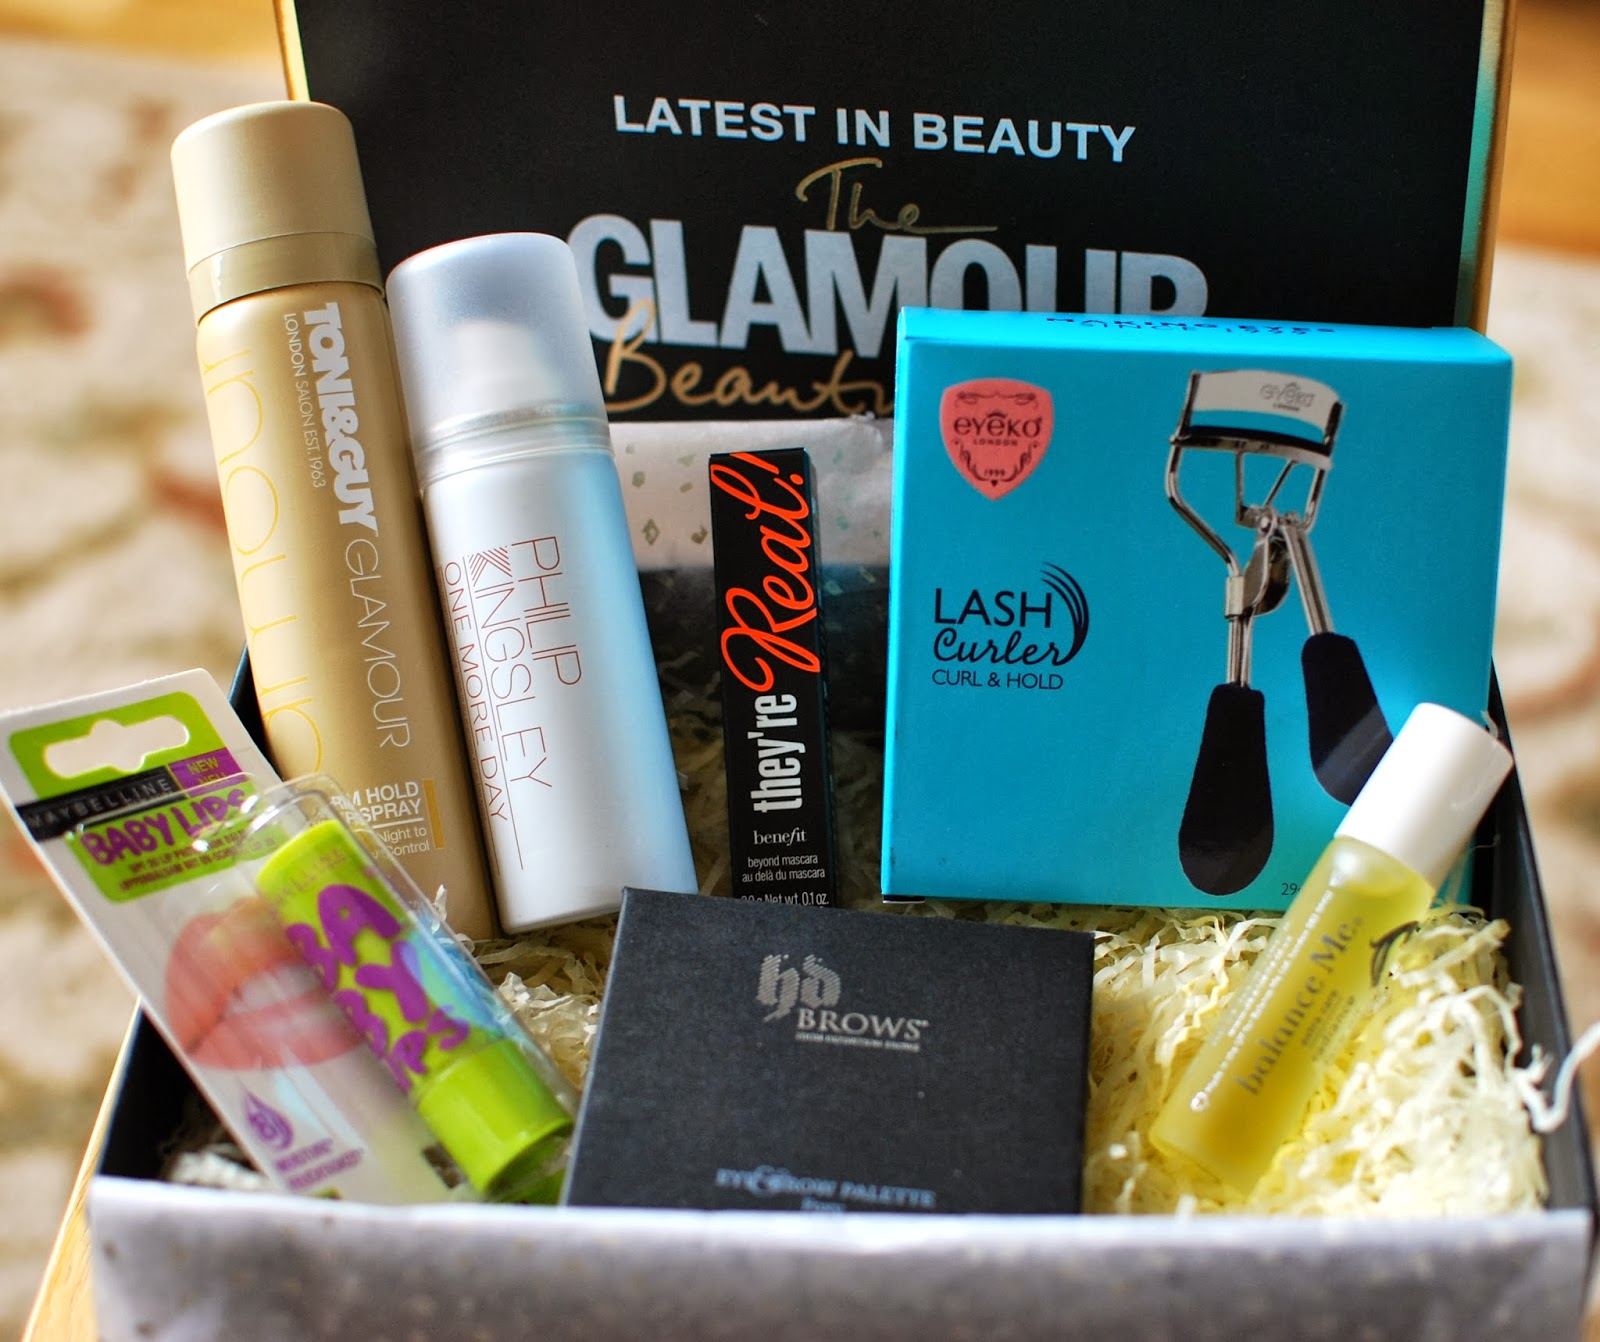 Latest in Beauty - The Glamour Beauty Edit box - The Beautiful Truth